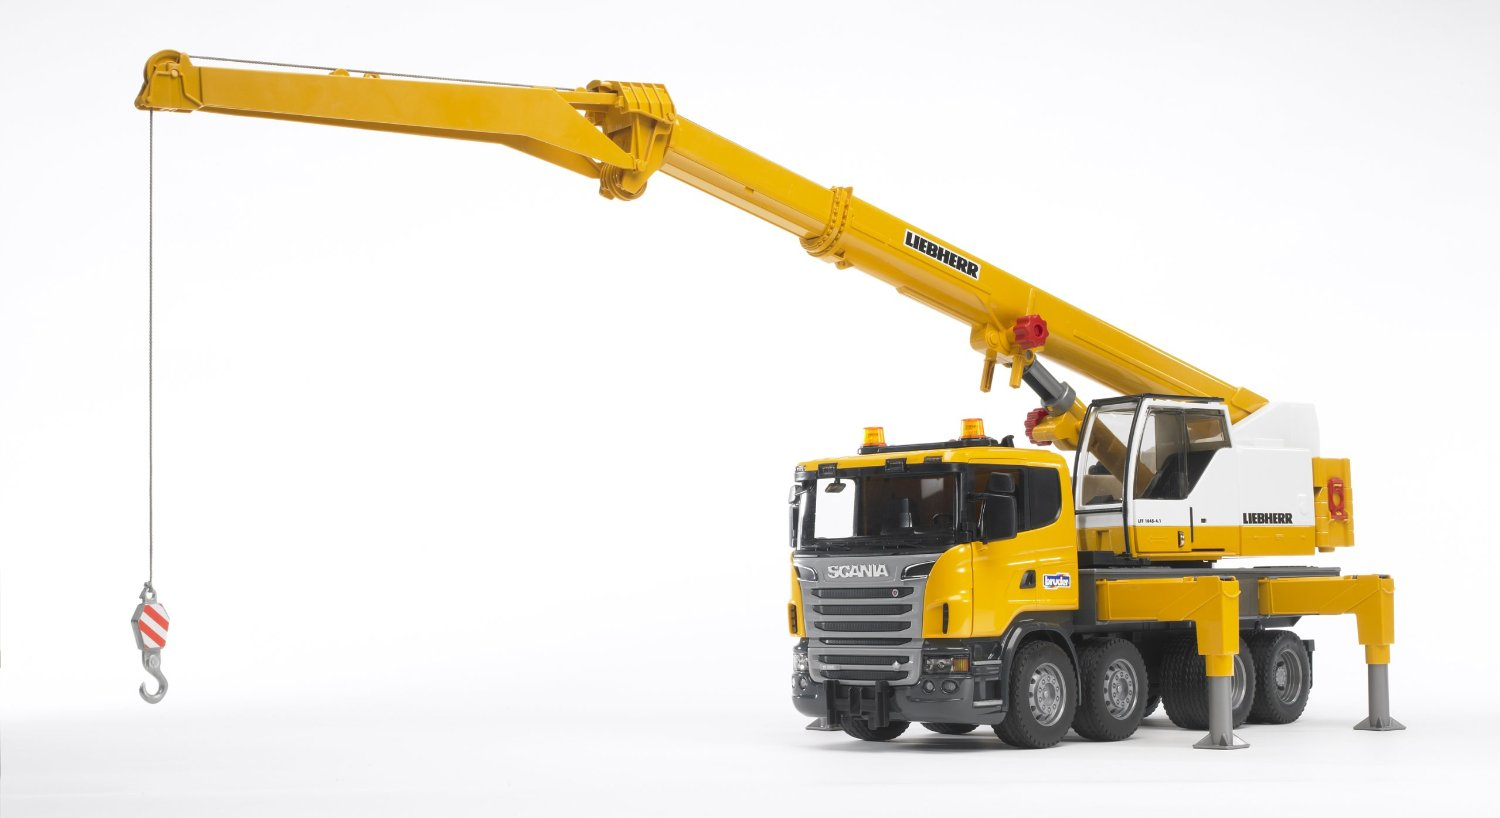 Bruder #03570 SCANIA R-Series Liebherr Crane with Light & Sound! NEW! #3570